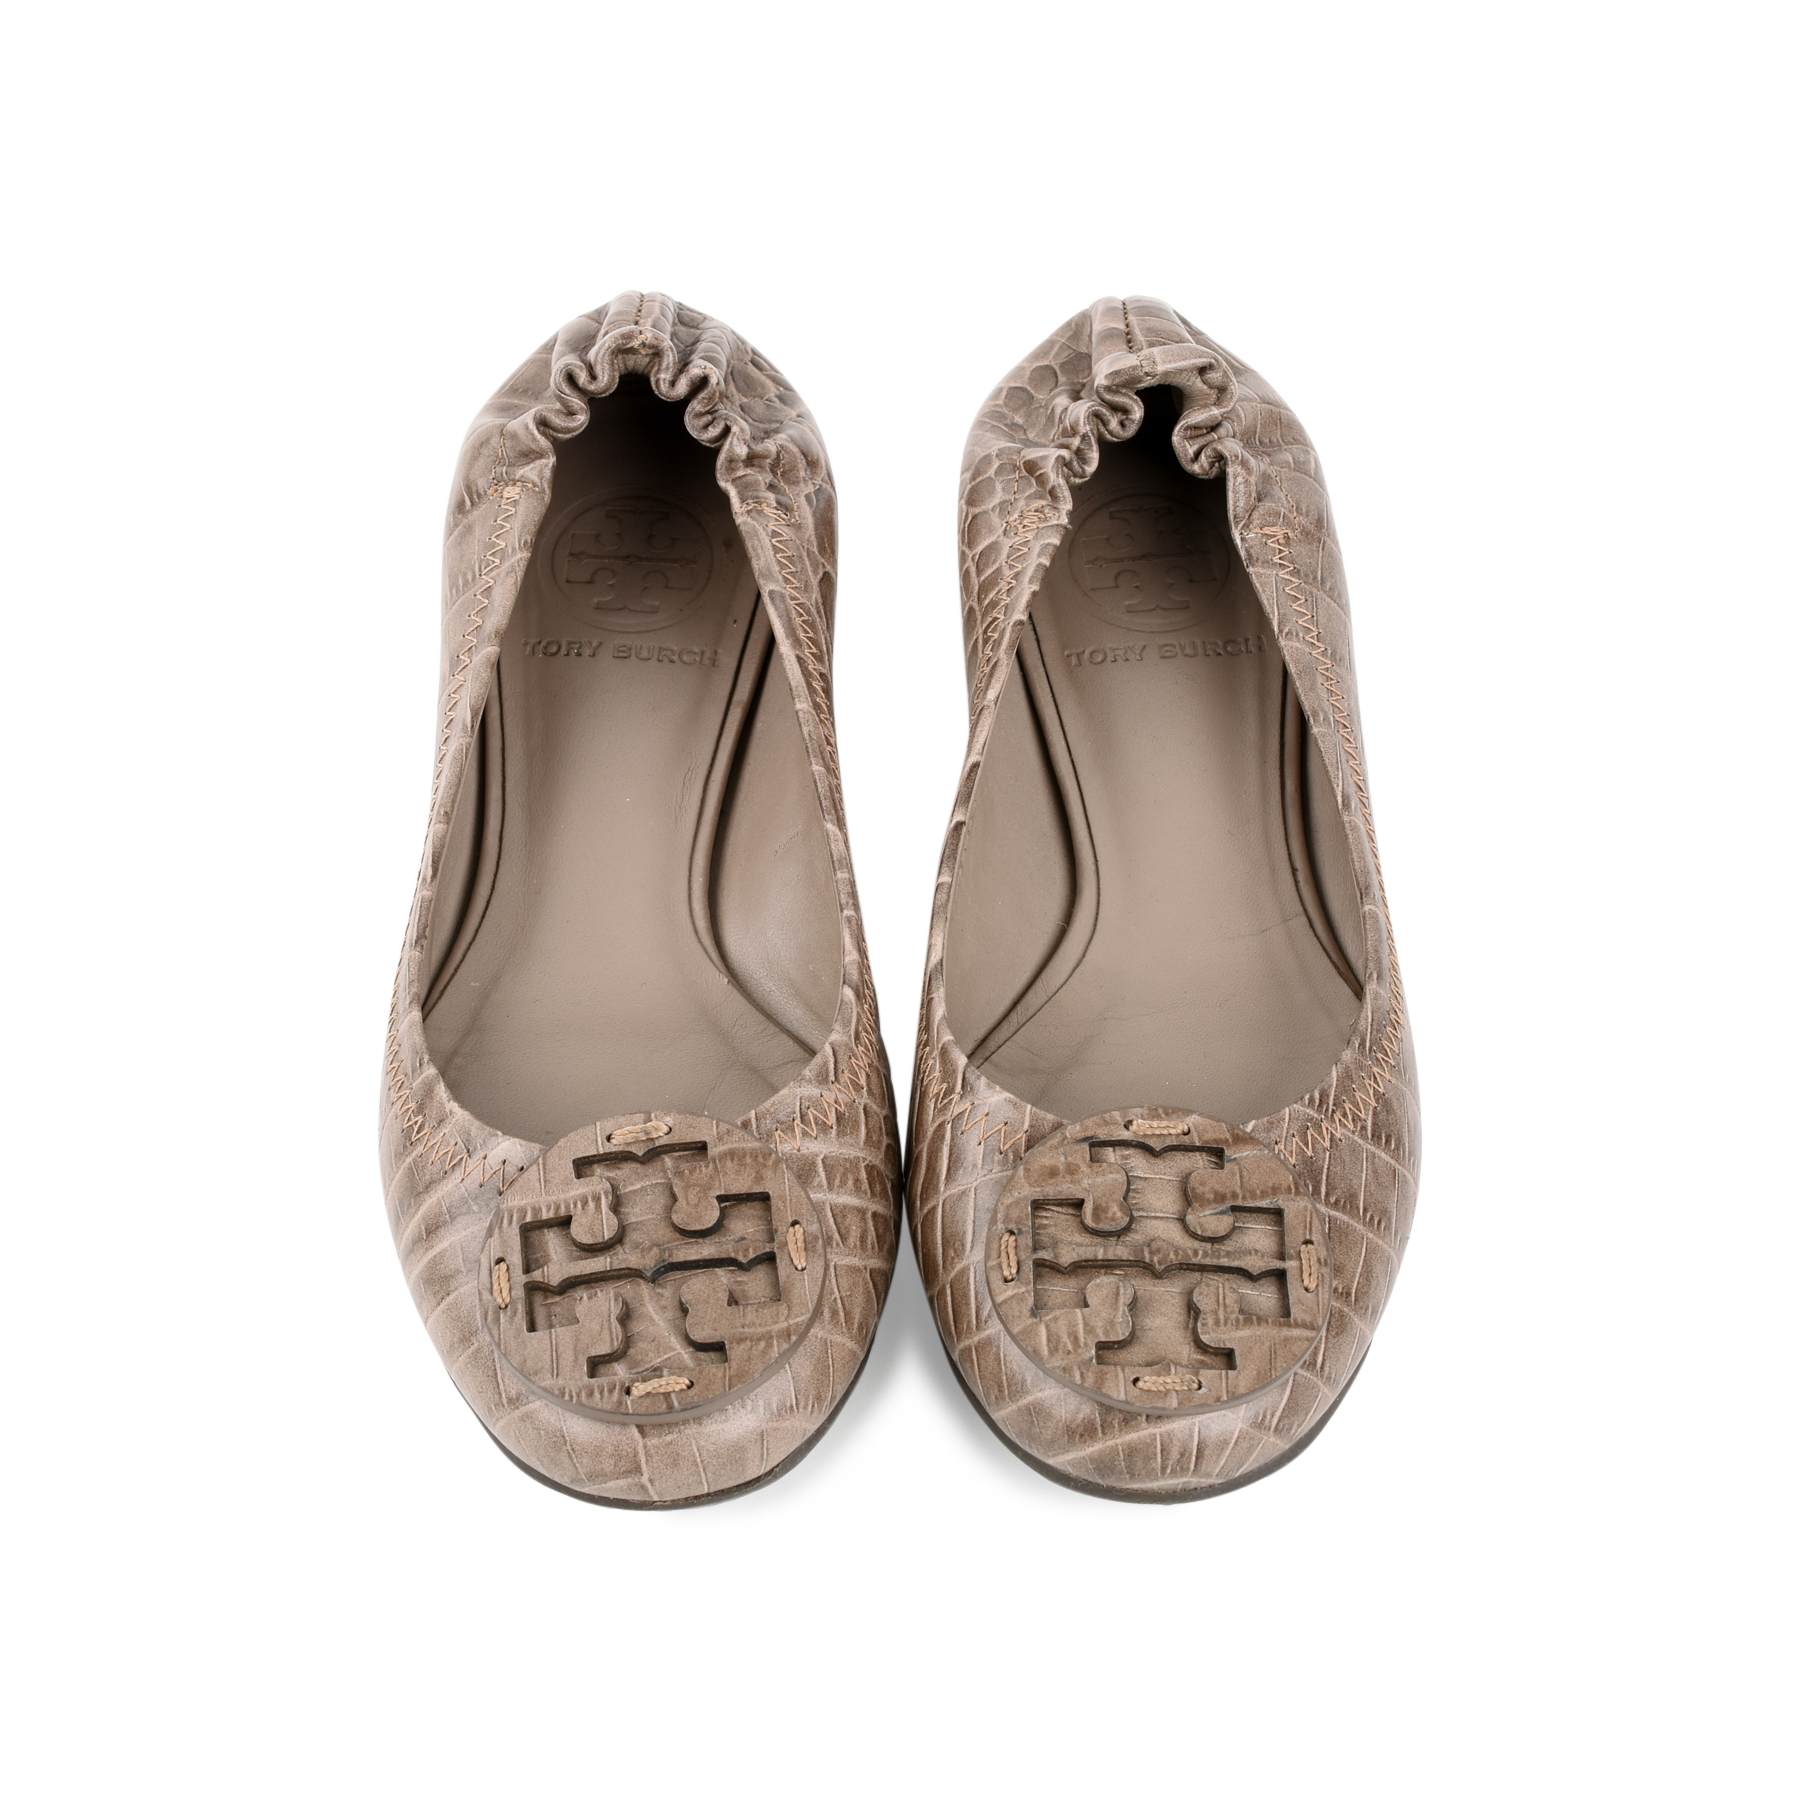 6efa8d091614 Authentic Second Hand Tory Burch Crocodile Embossed reva Flats  (PSS-225-00024)